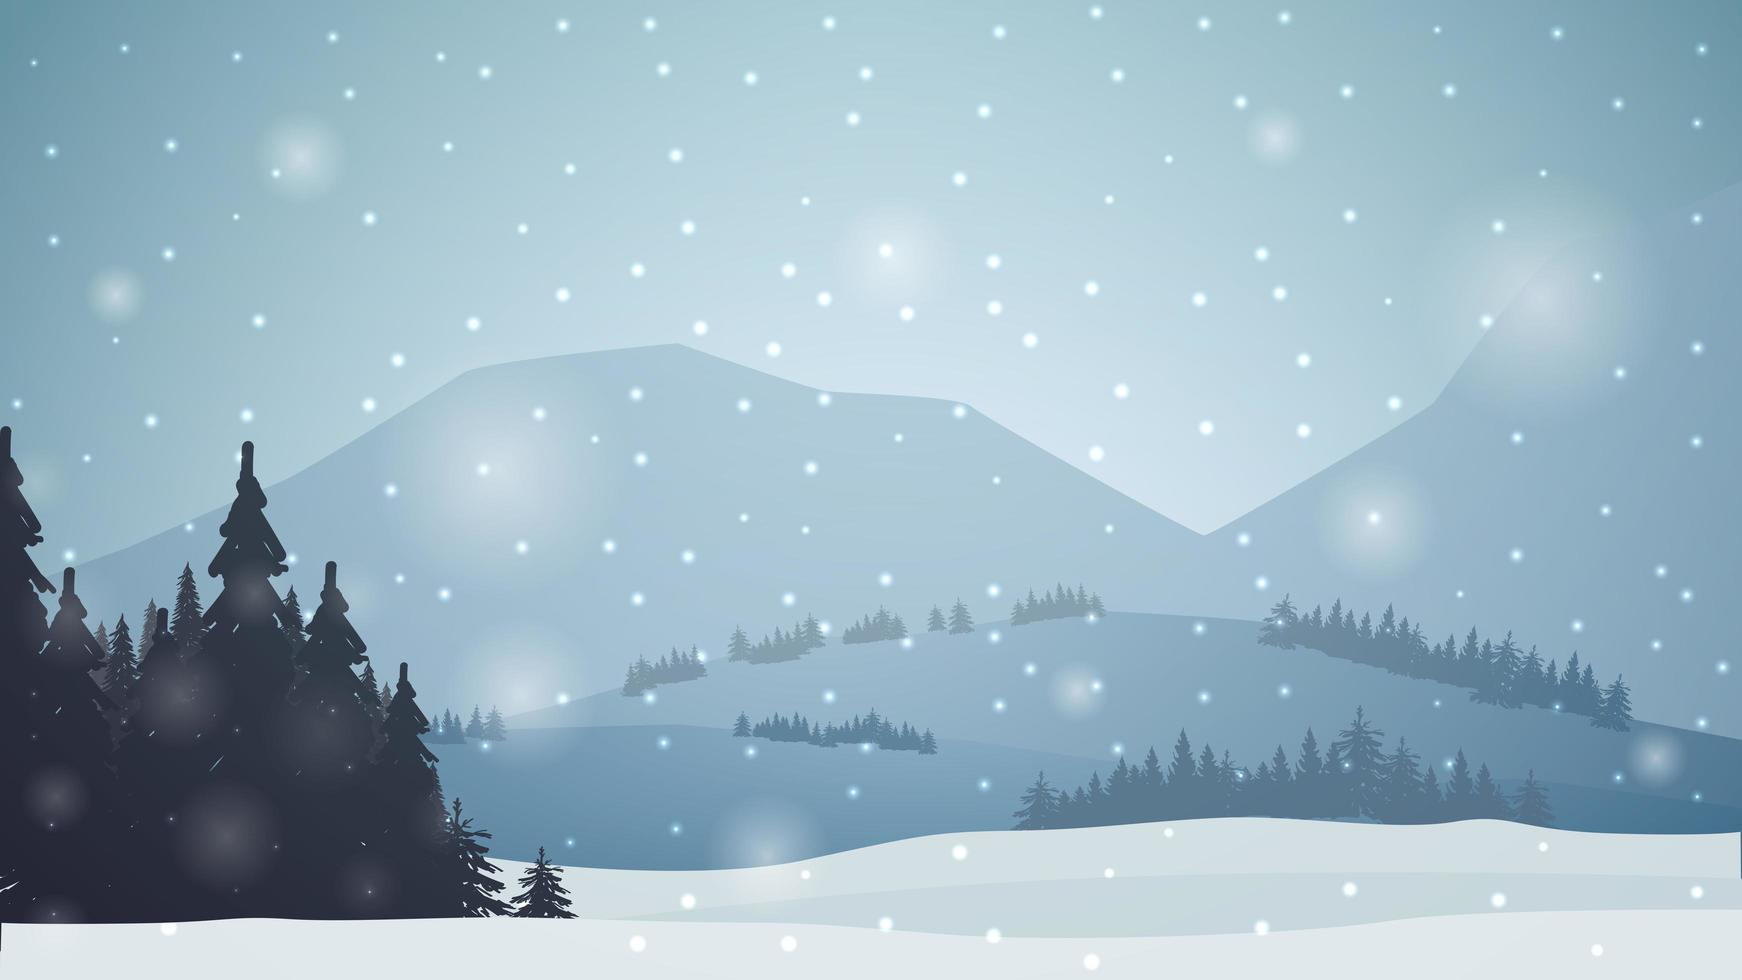 Winter landscape with mountains, pines, forest, snow falling. vector